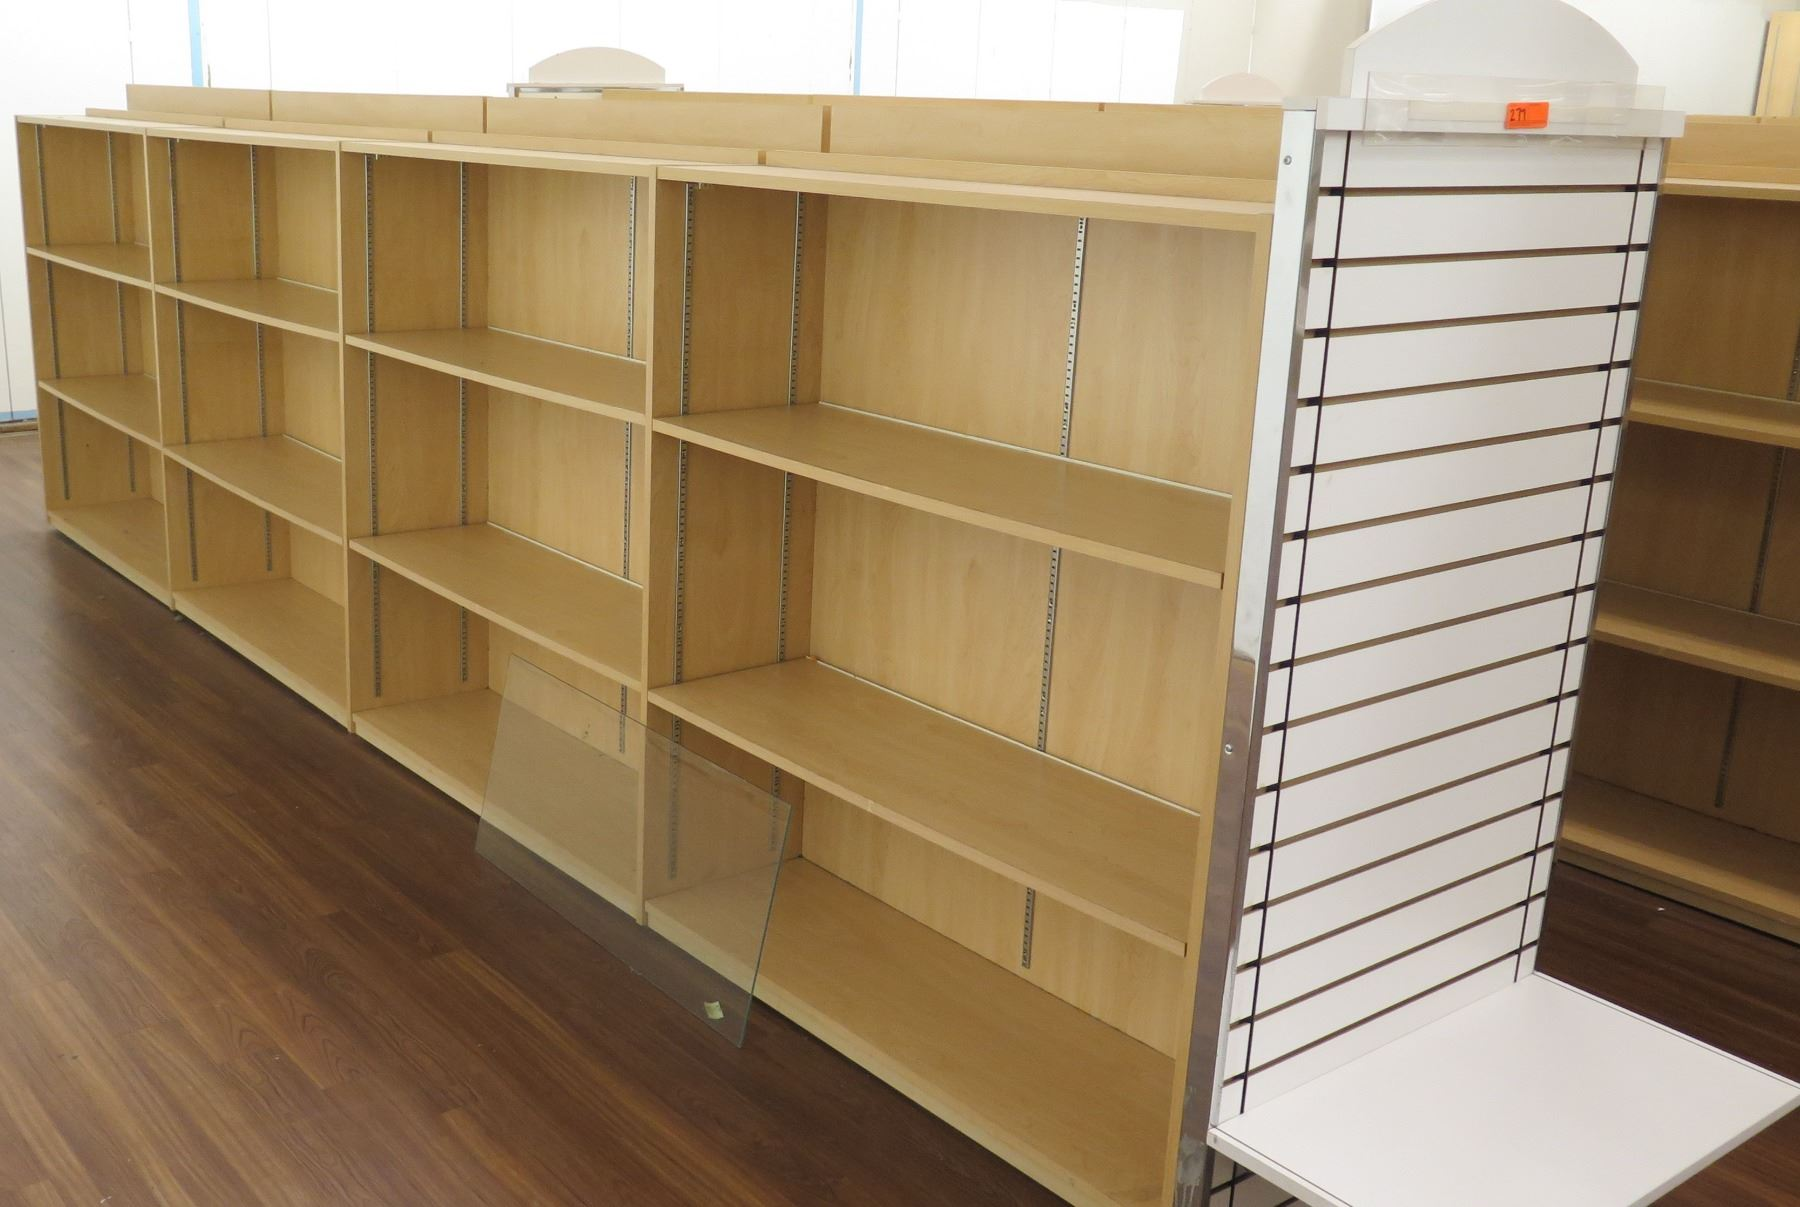 Long Wooden 12 Cubicle Display Shelf Unit 192 L X 29 D X 53